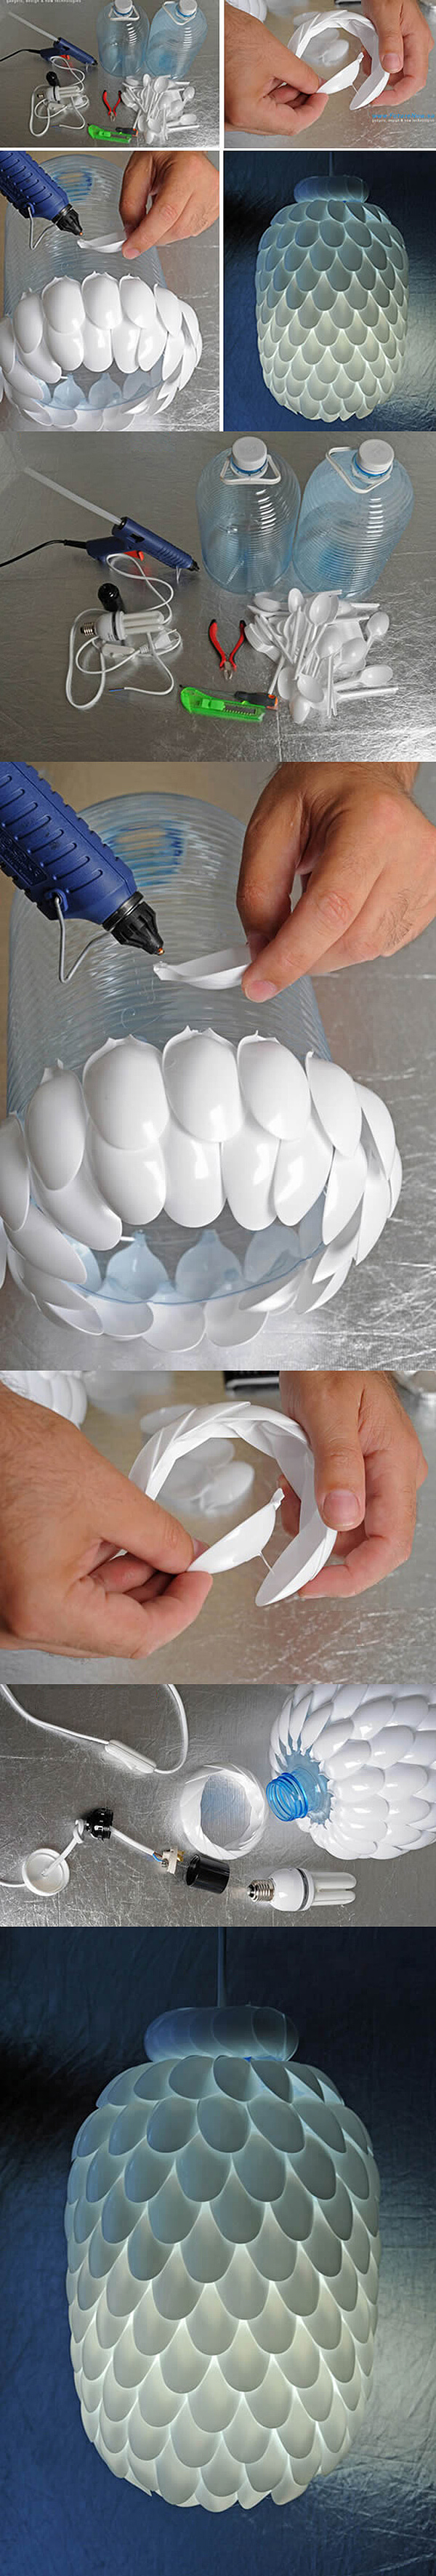 Recycled and Crafty Spoon-Scaled Lampshade